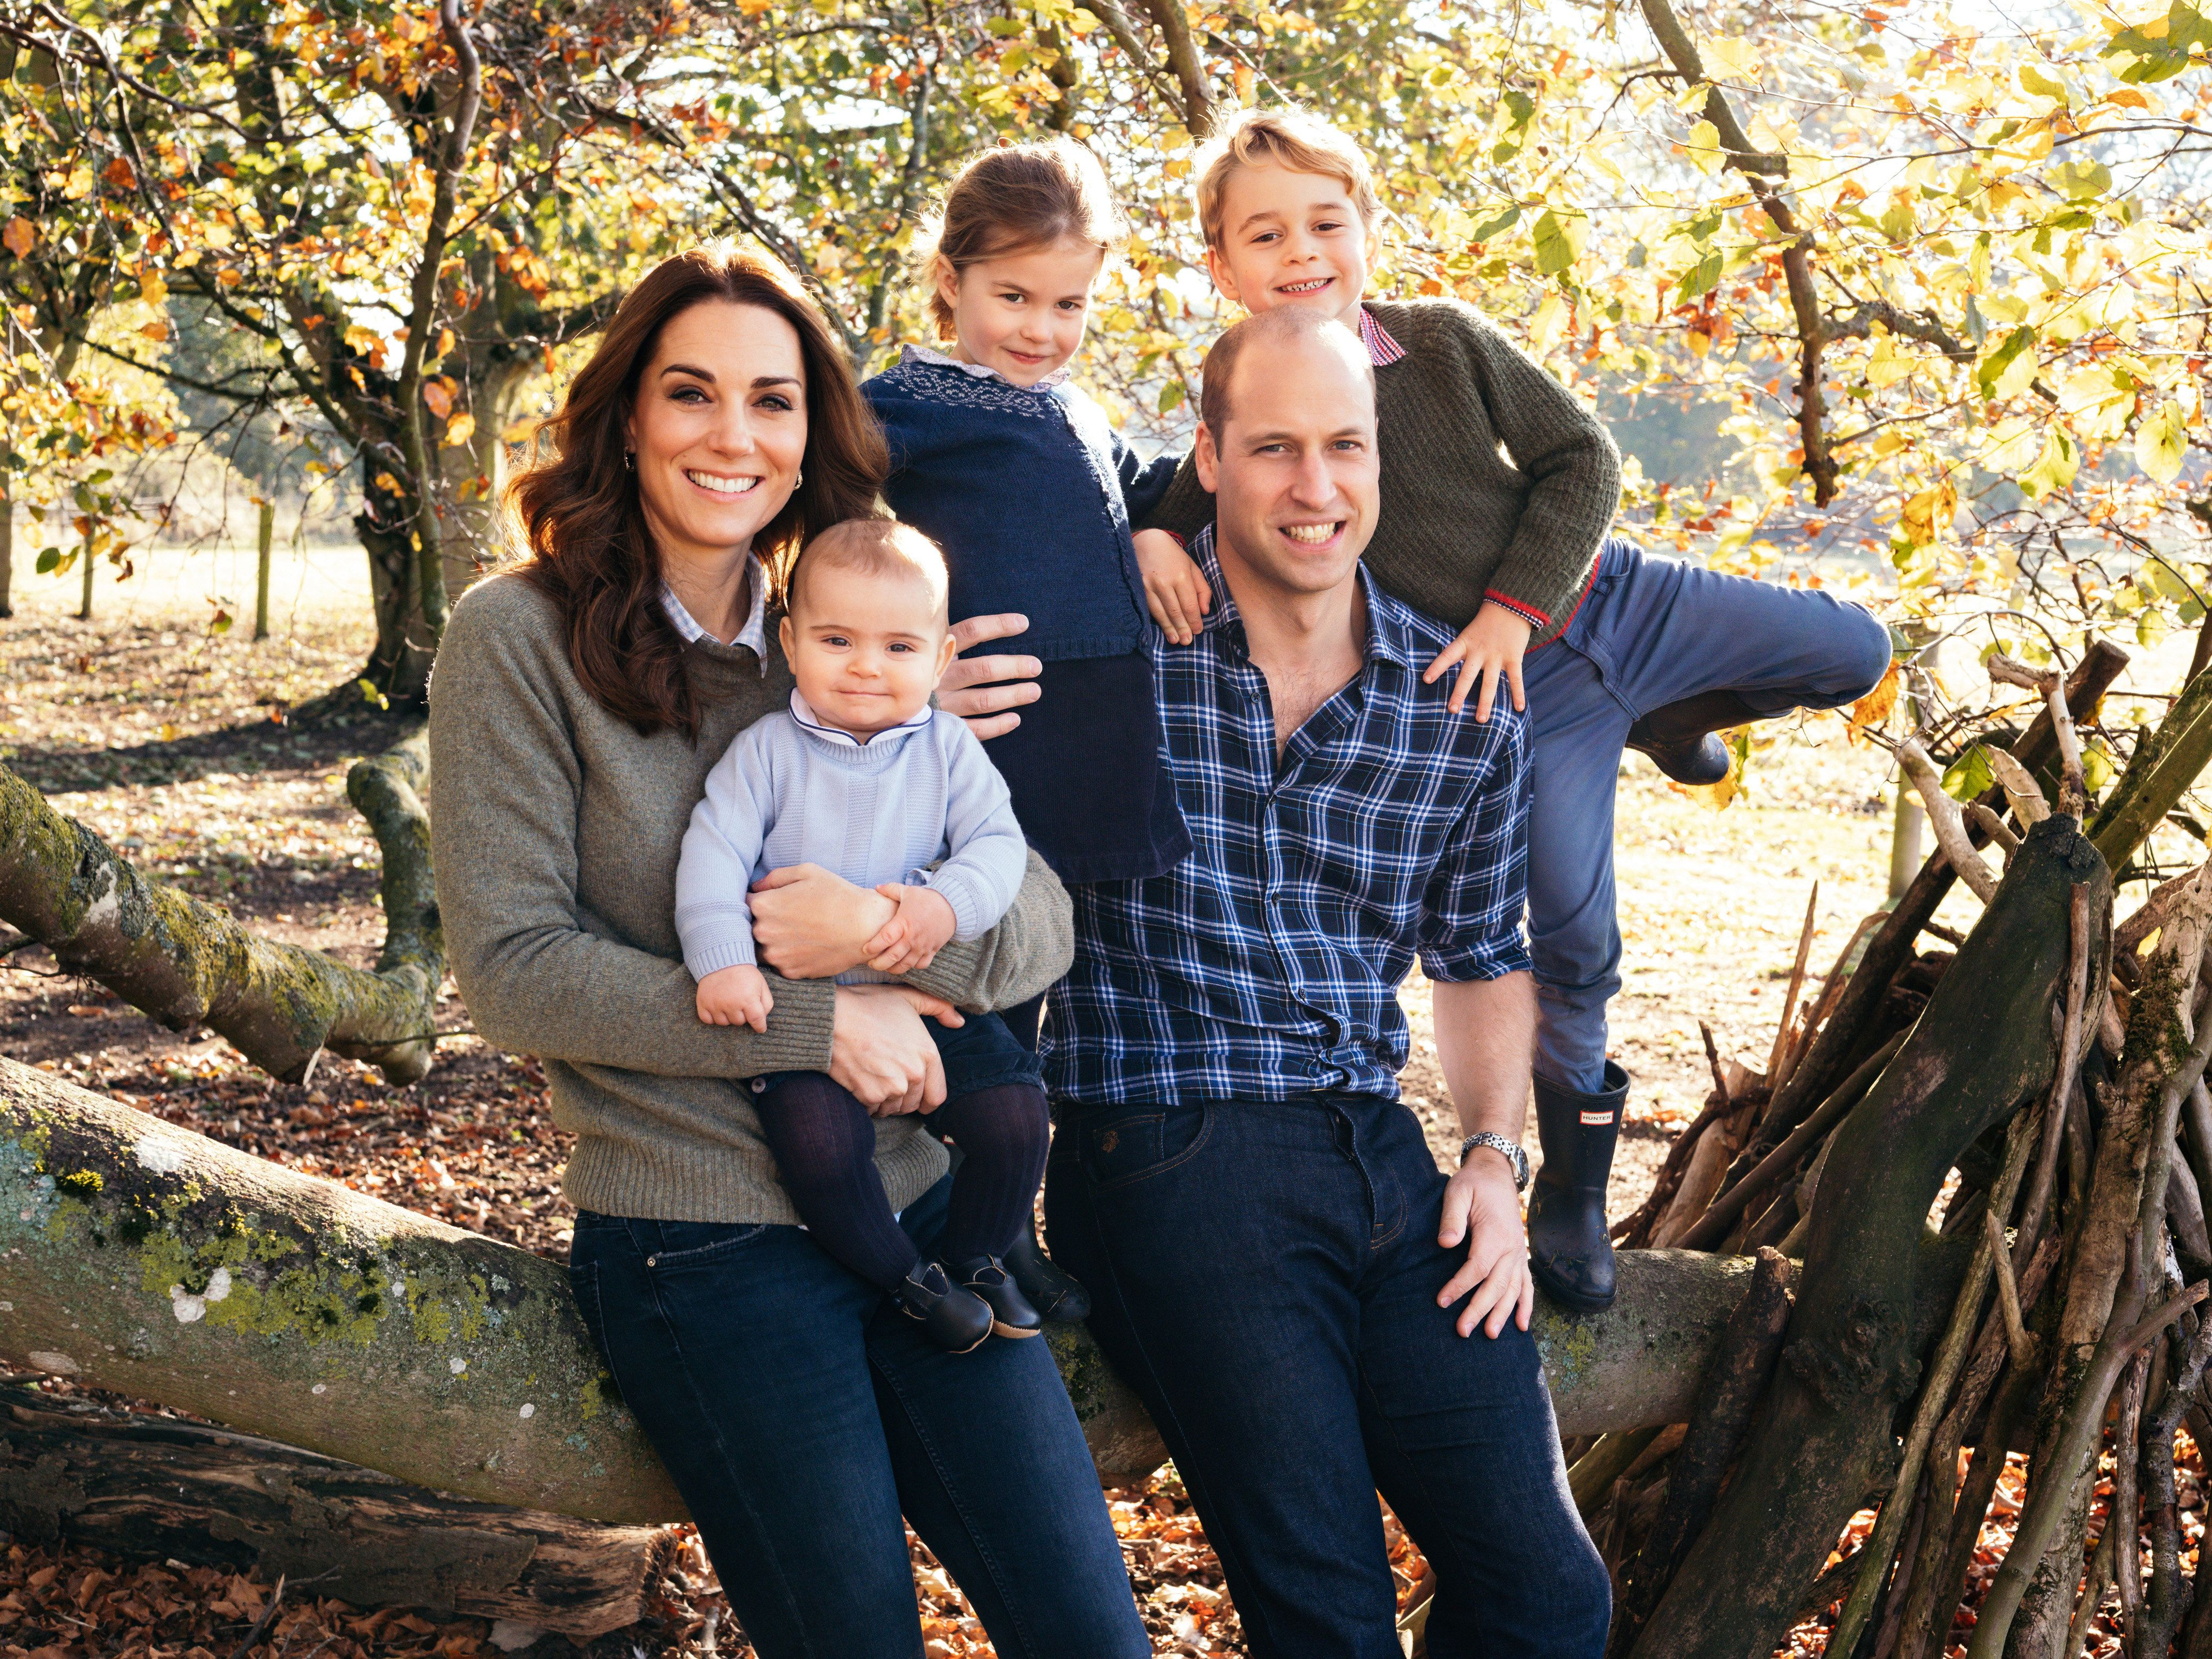 """Prince William and the former Kate Middleton released this family photo as their <a href=""""https://www.huffpost.com/entry/william-kate-harry-meghan-christmas-card_n_5c13bb2fe4b0539b32140e85"""" target=""""_blank"""" rel=""""noopener noreferrer"""">Christmas card</a> for 2018."""